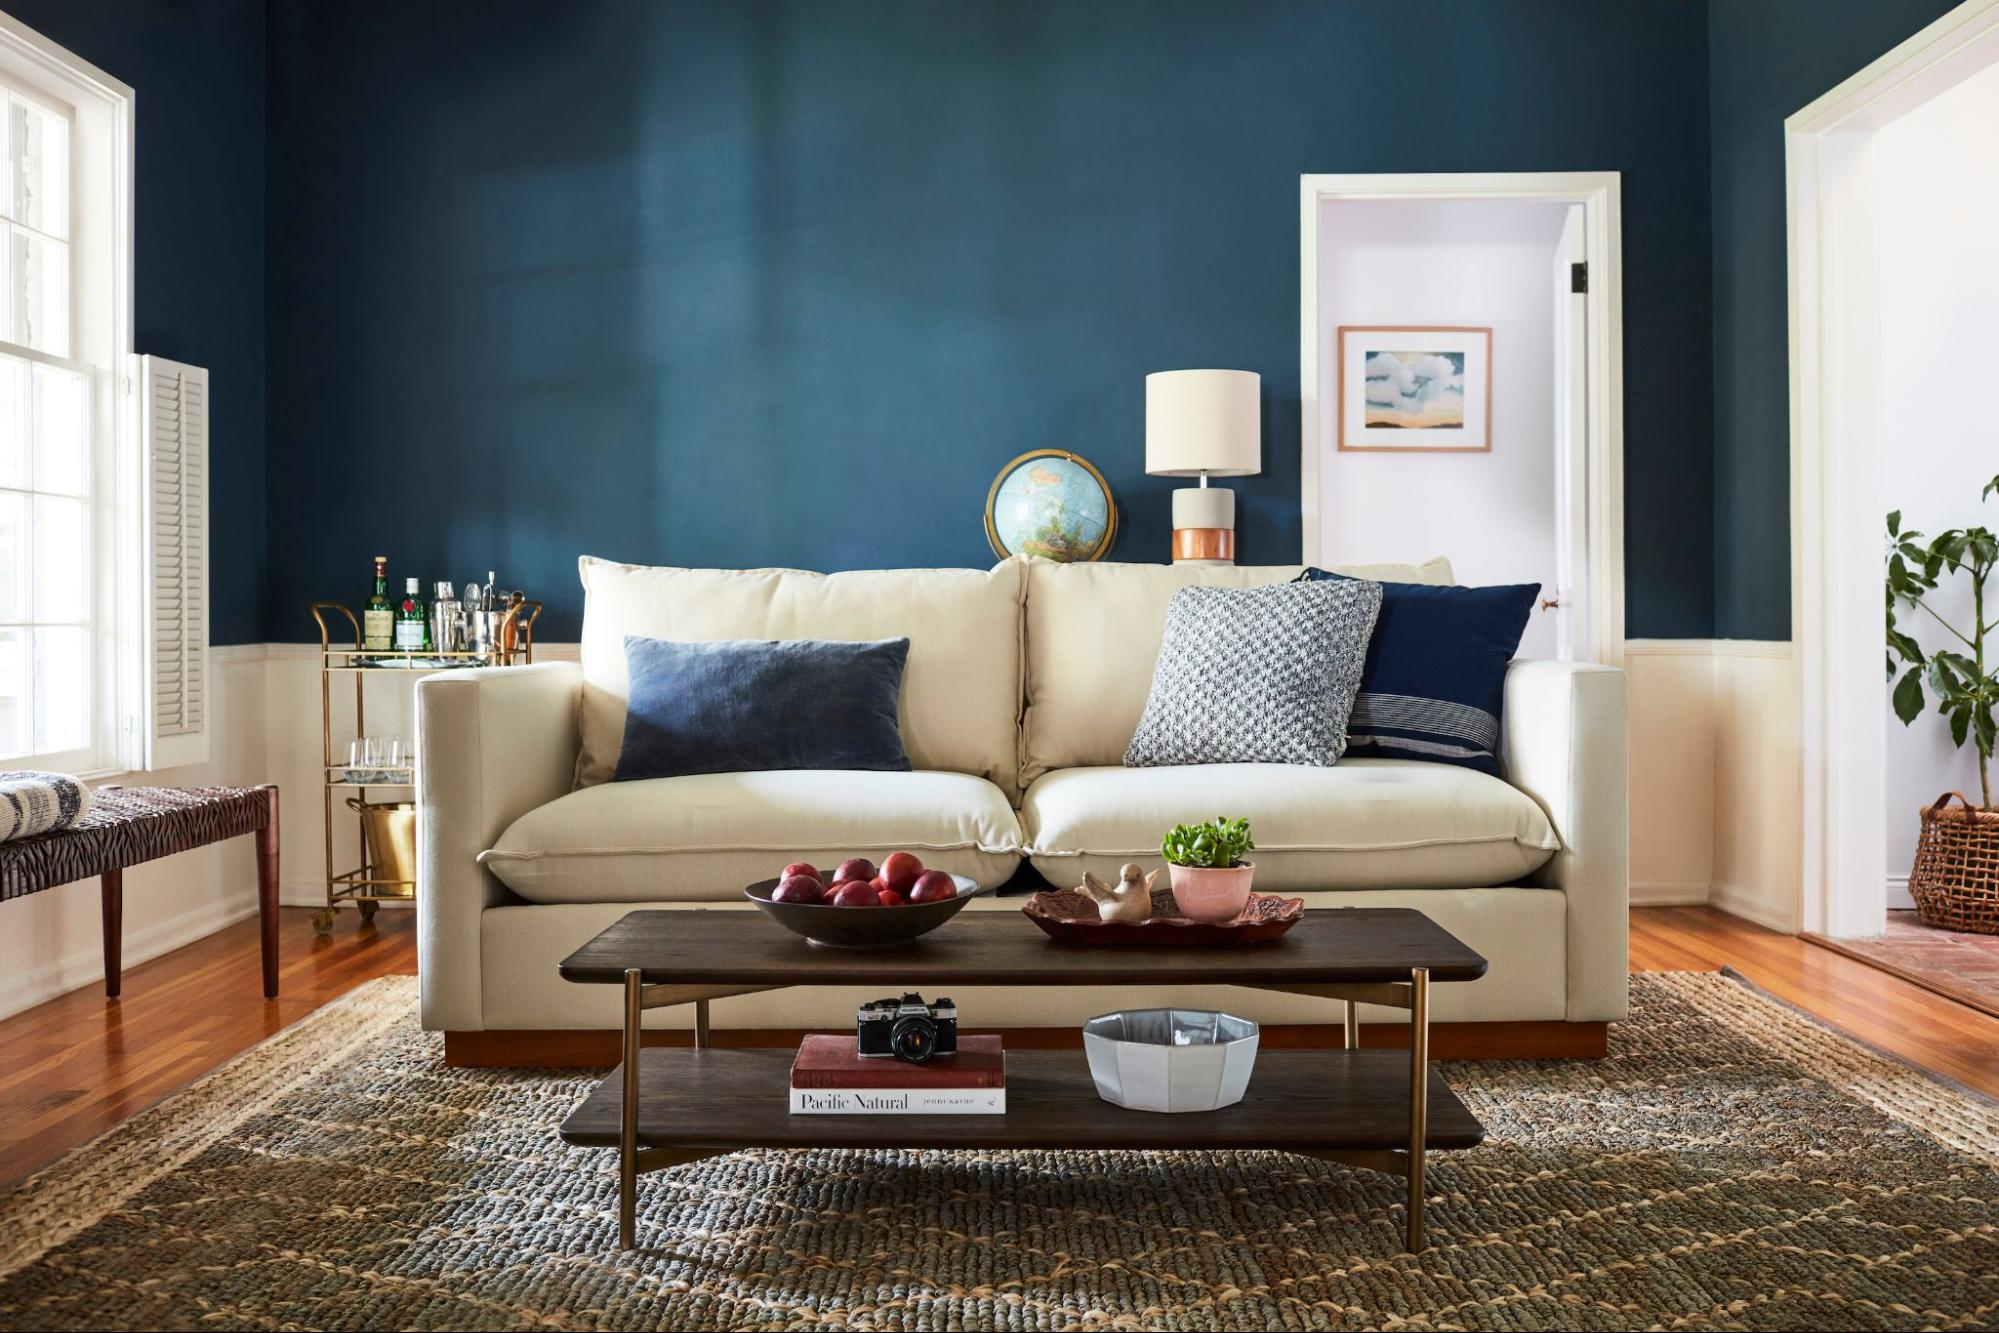 A white loveseat backdropped by a blue room complete with a coffee table and bar cart.